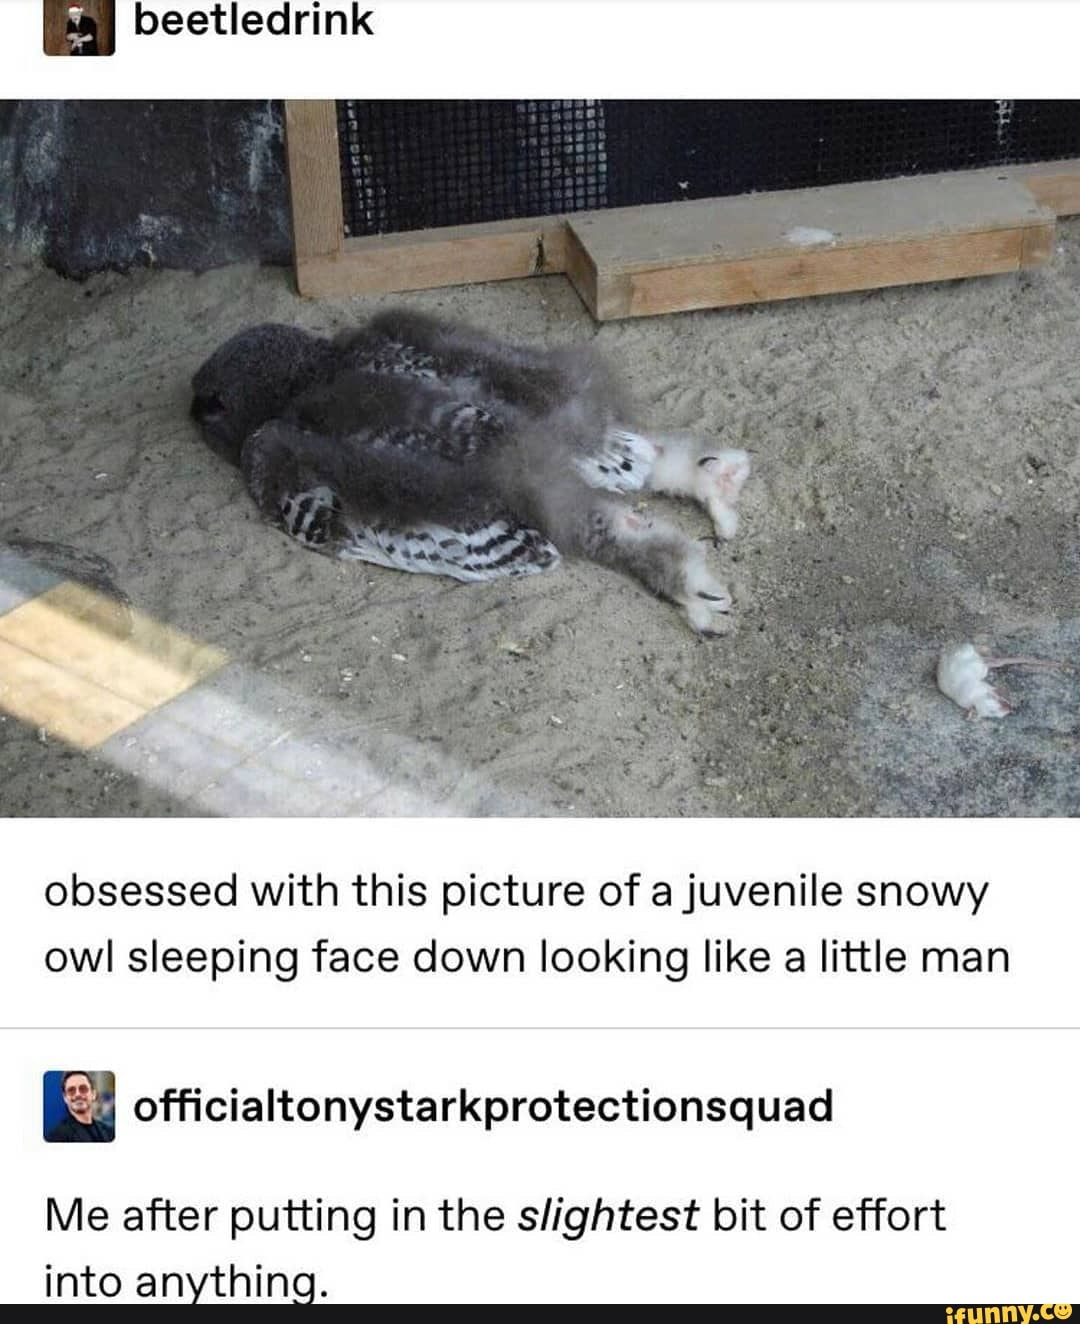 Snowy Owl Sleeping : snowy, sleeping, Obsessed, Picture, Juvenile, Snowy, Sleeping, Looking, Little, Officialtonystarkprotectionsquad, After, Putting, Slightest, Effort, Anything., IFunny